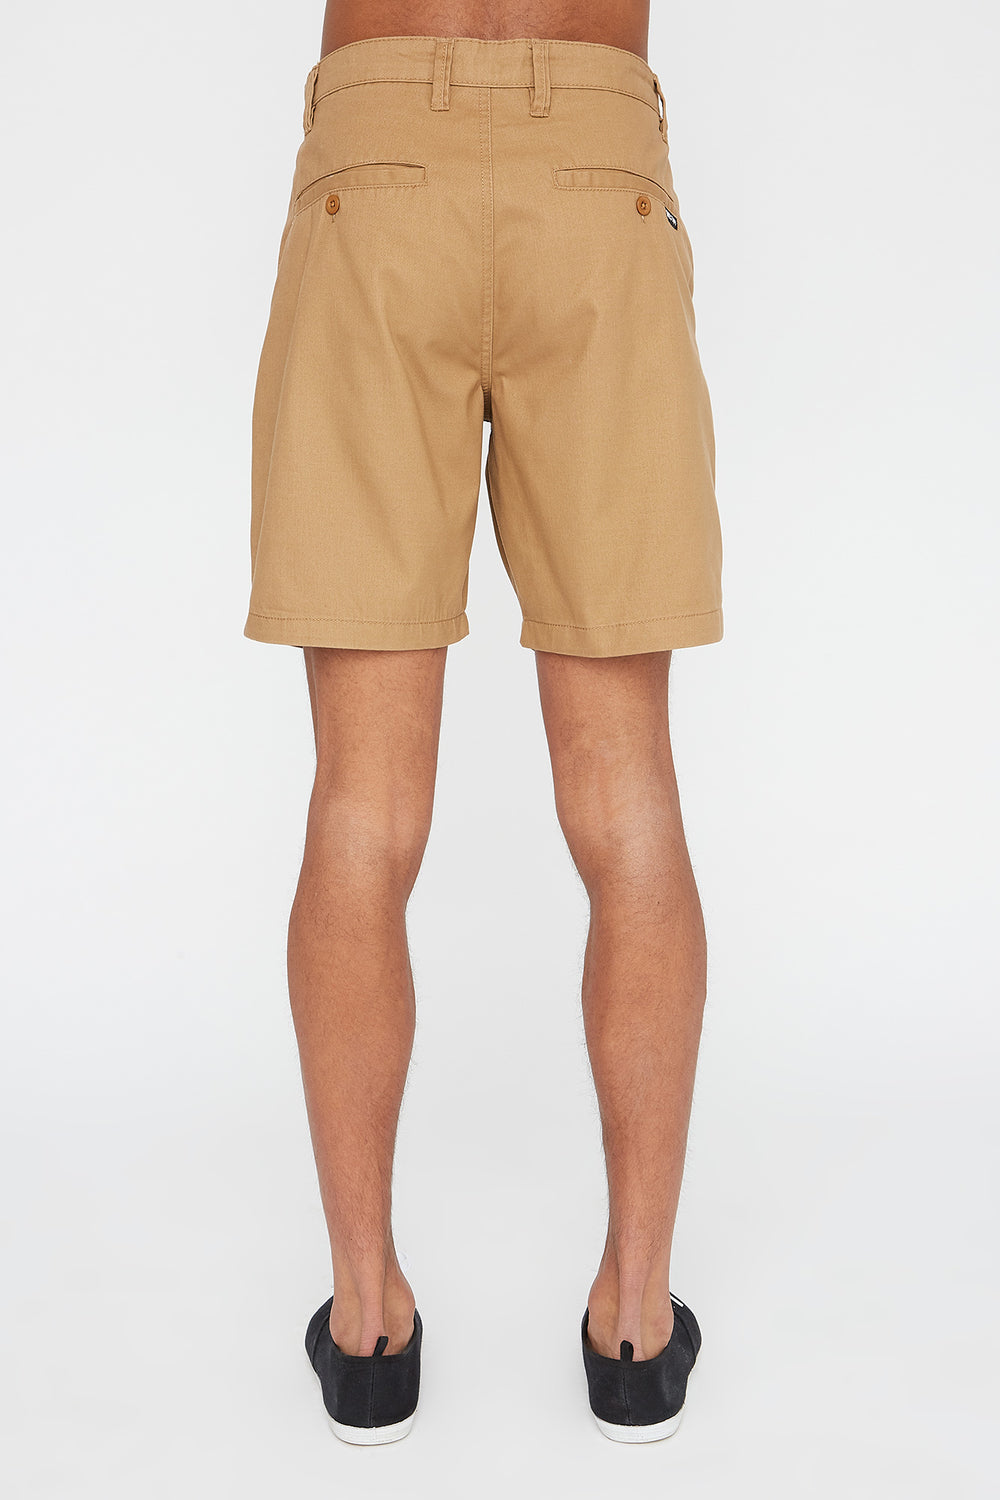 Short Coupe Etroite West49 Homme Chameau